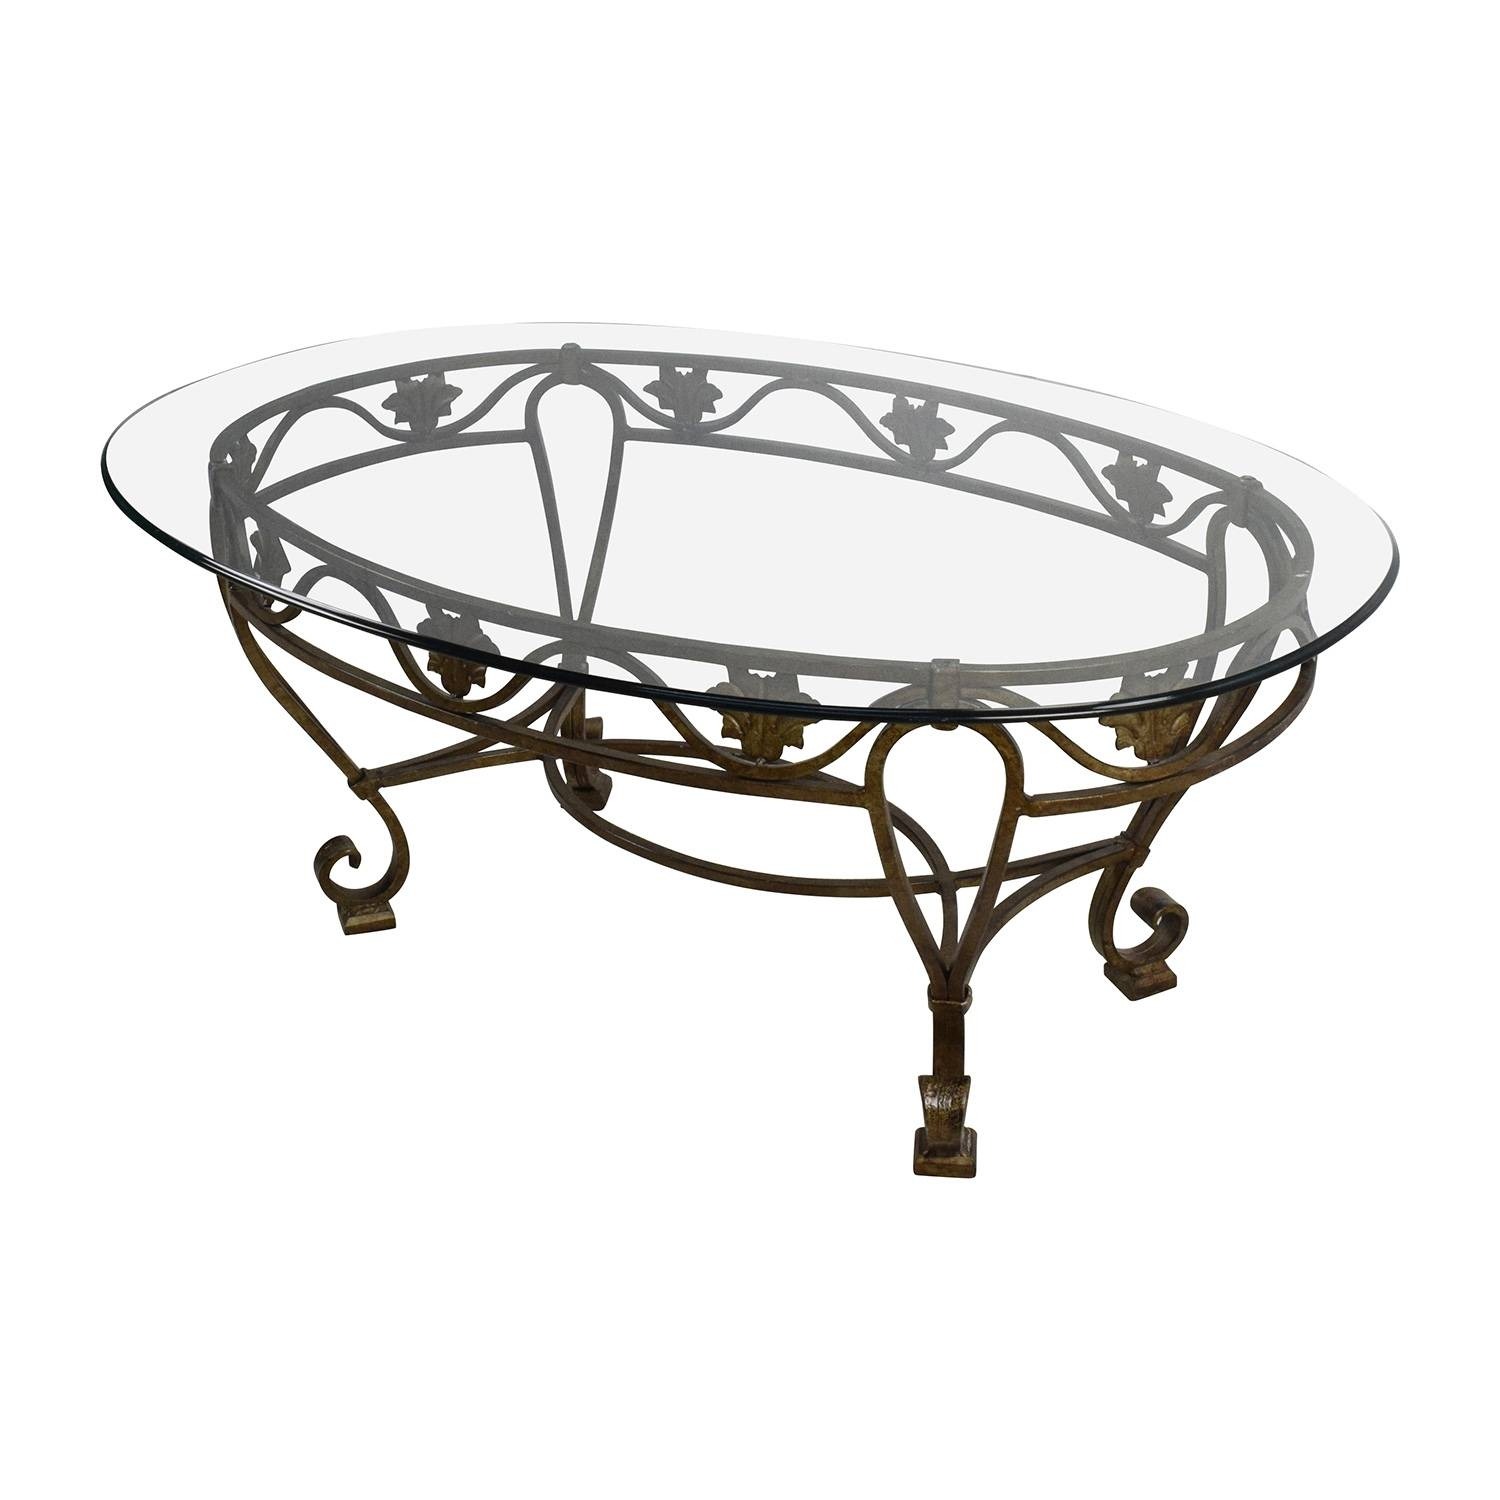 90% Off - Iron Cast Glass Top Antique Coffee Table / Tables in Antique Glass Top Coffee Tables (Image 1 of 30)